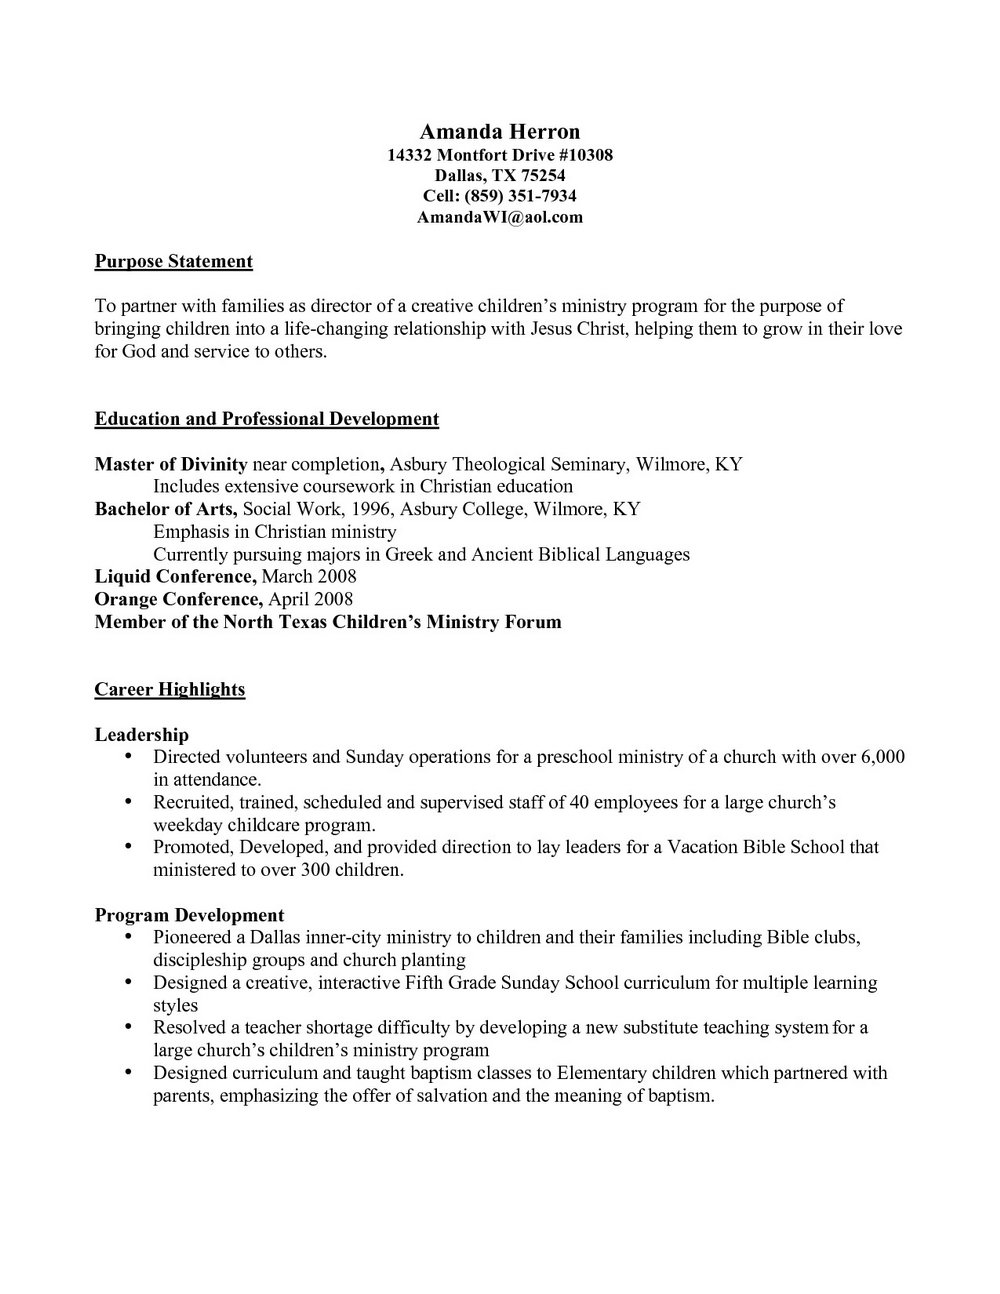 Ministry Resume Templates For Word Resumes Mtu5 Resume